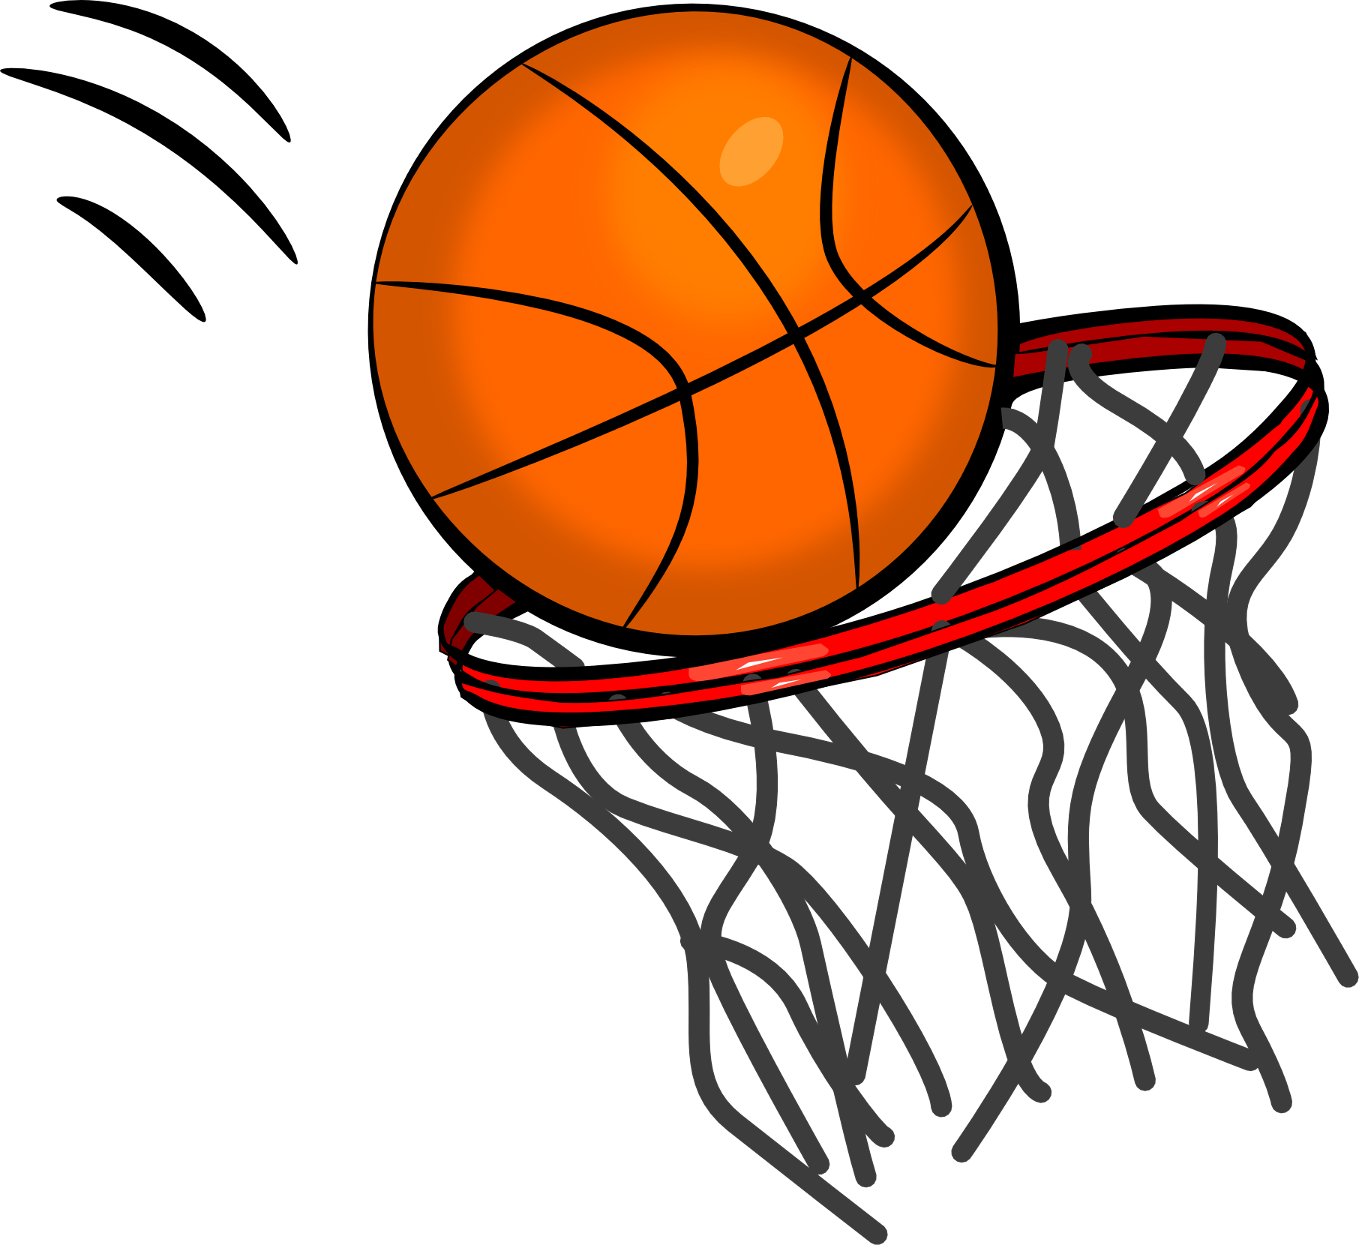 Basketballs Images - Cliparts.co